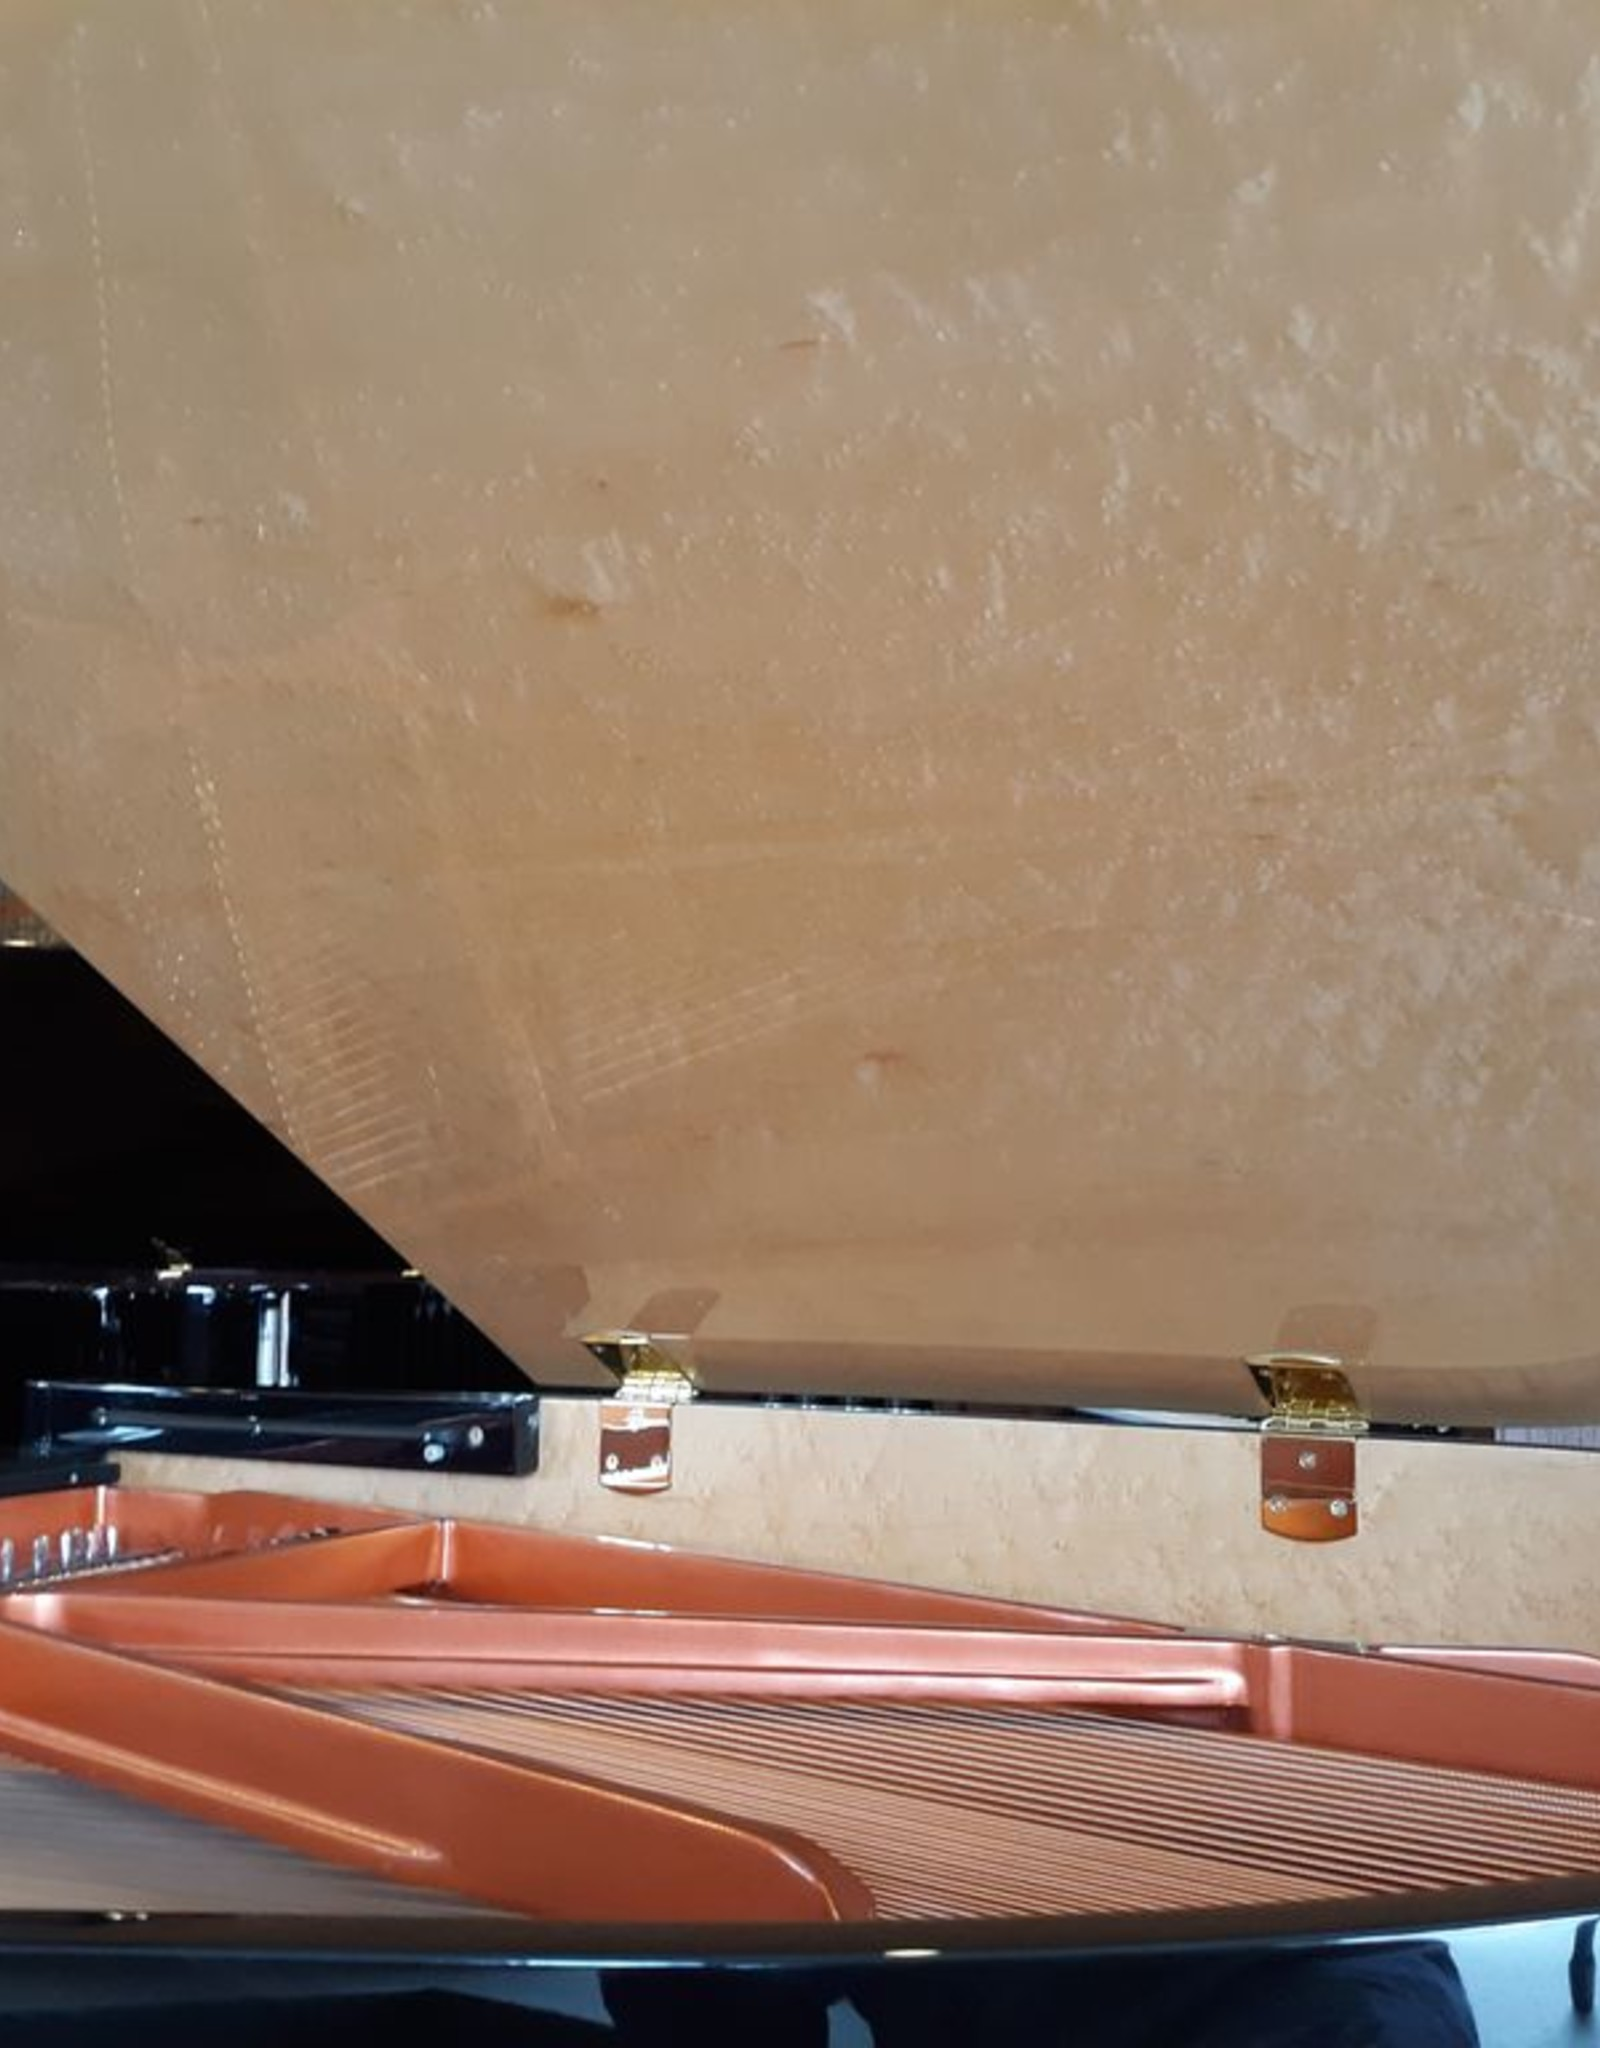 """Hallet Davis & Co. Hallet Davis & Co. HD-152/T 5'0"""" Deco Grand Piano (High Polished Ebonywith High Polish Birdseye Maple Accents, Inner Rim, and Underside of LId)"""